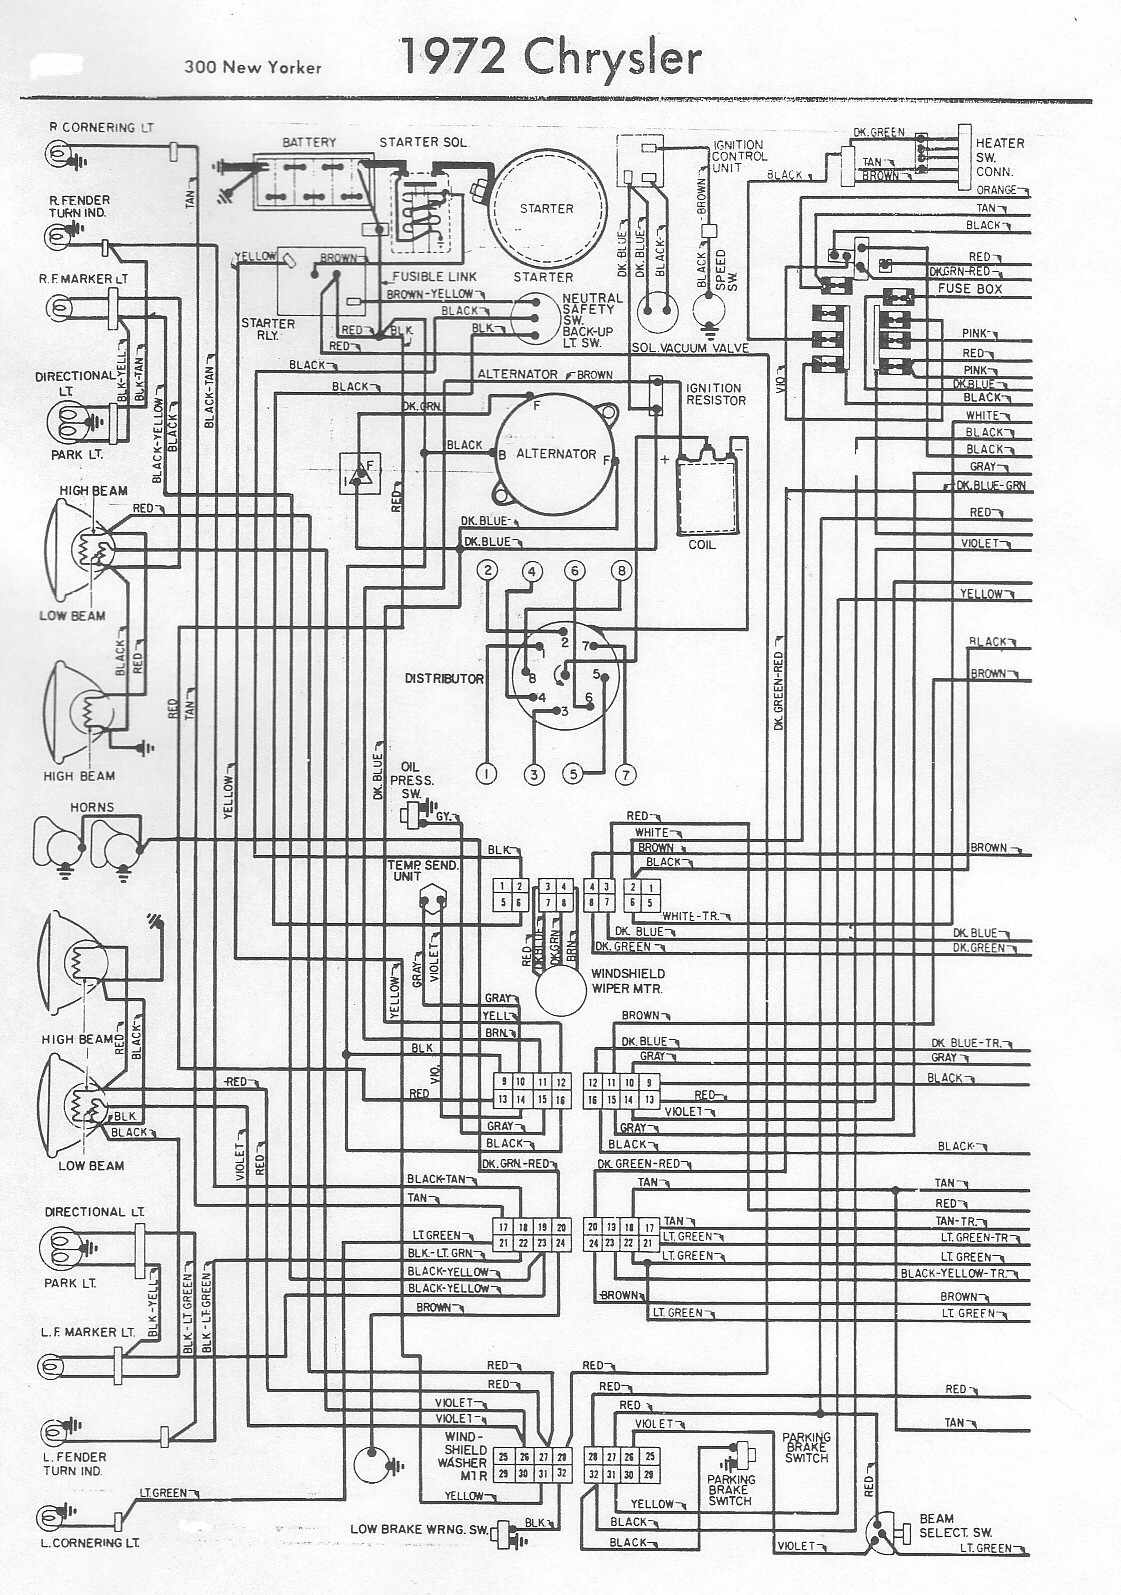 free mopar wiring diagrams wiring diagram blog big block mopar wiring diagram 1954 mopar wiring diagrams [ 1121 x 1595 Pixel ]